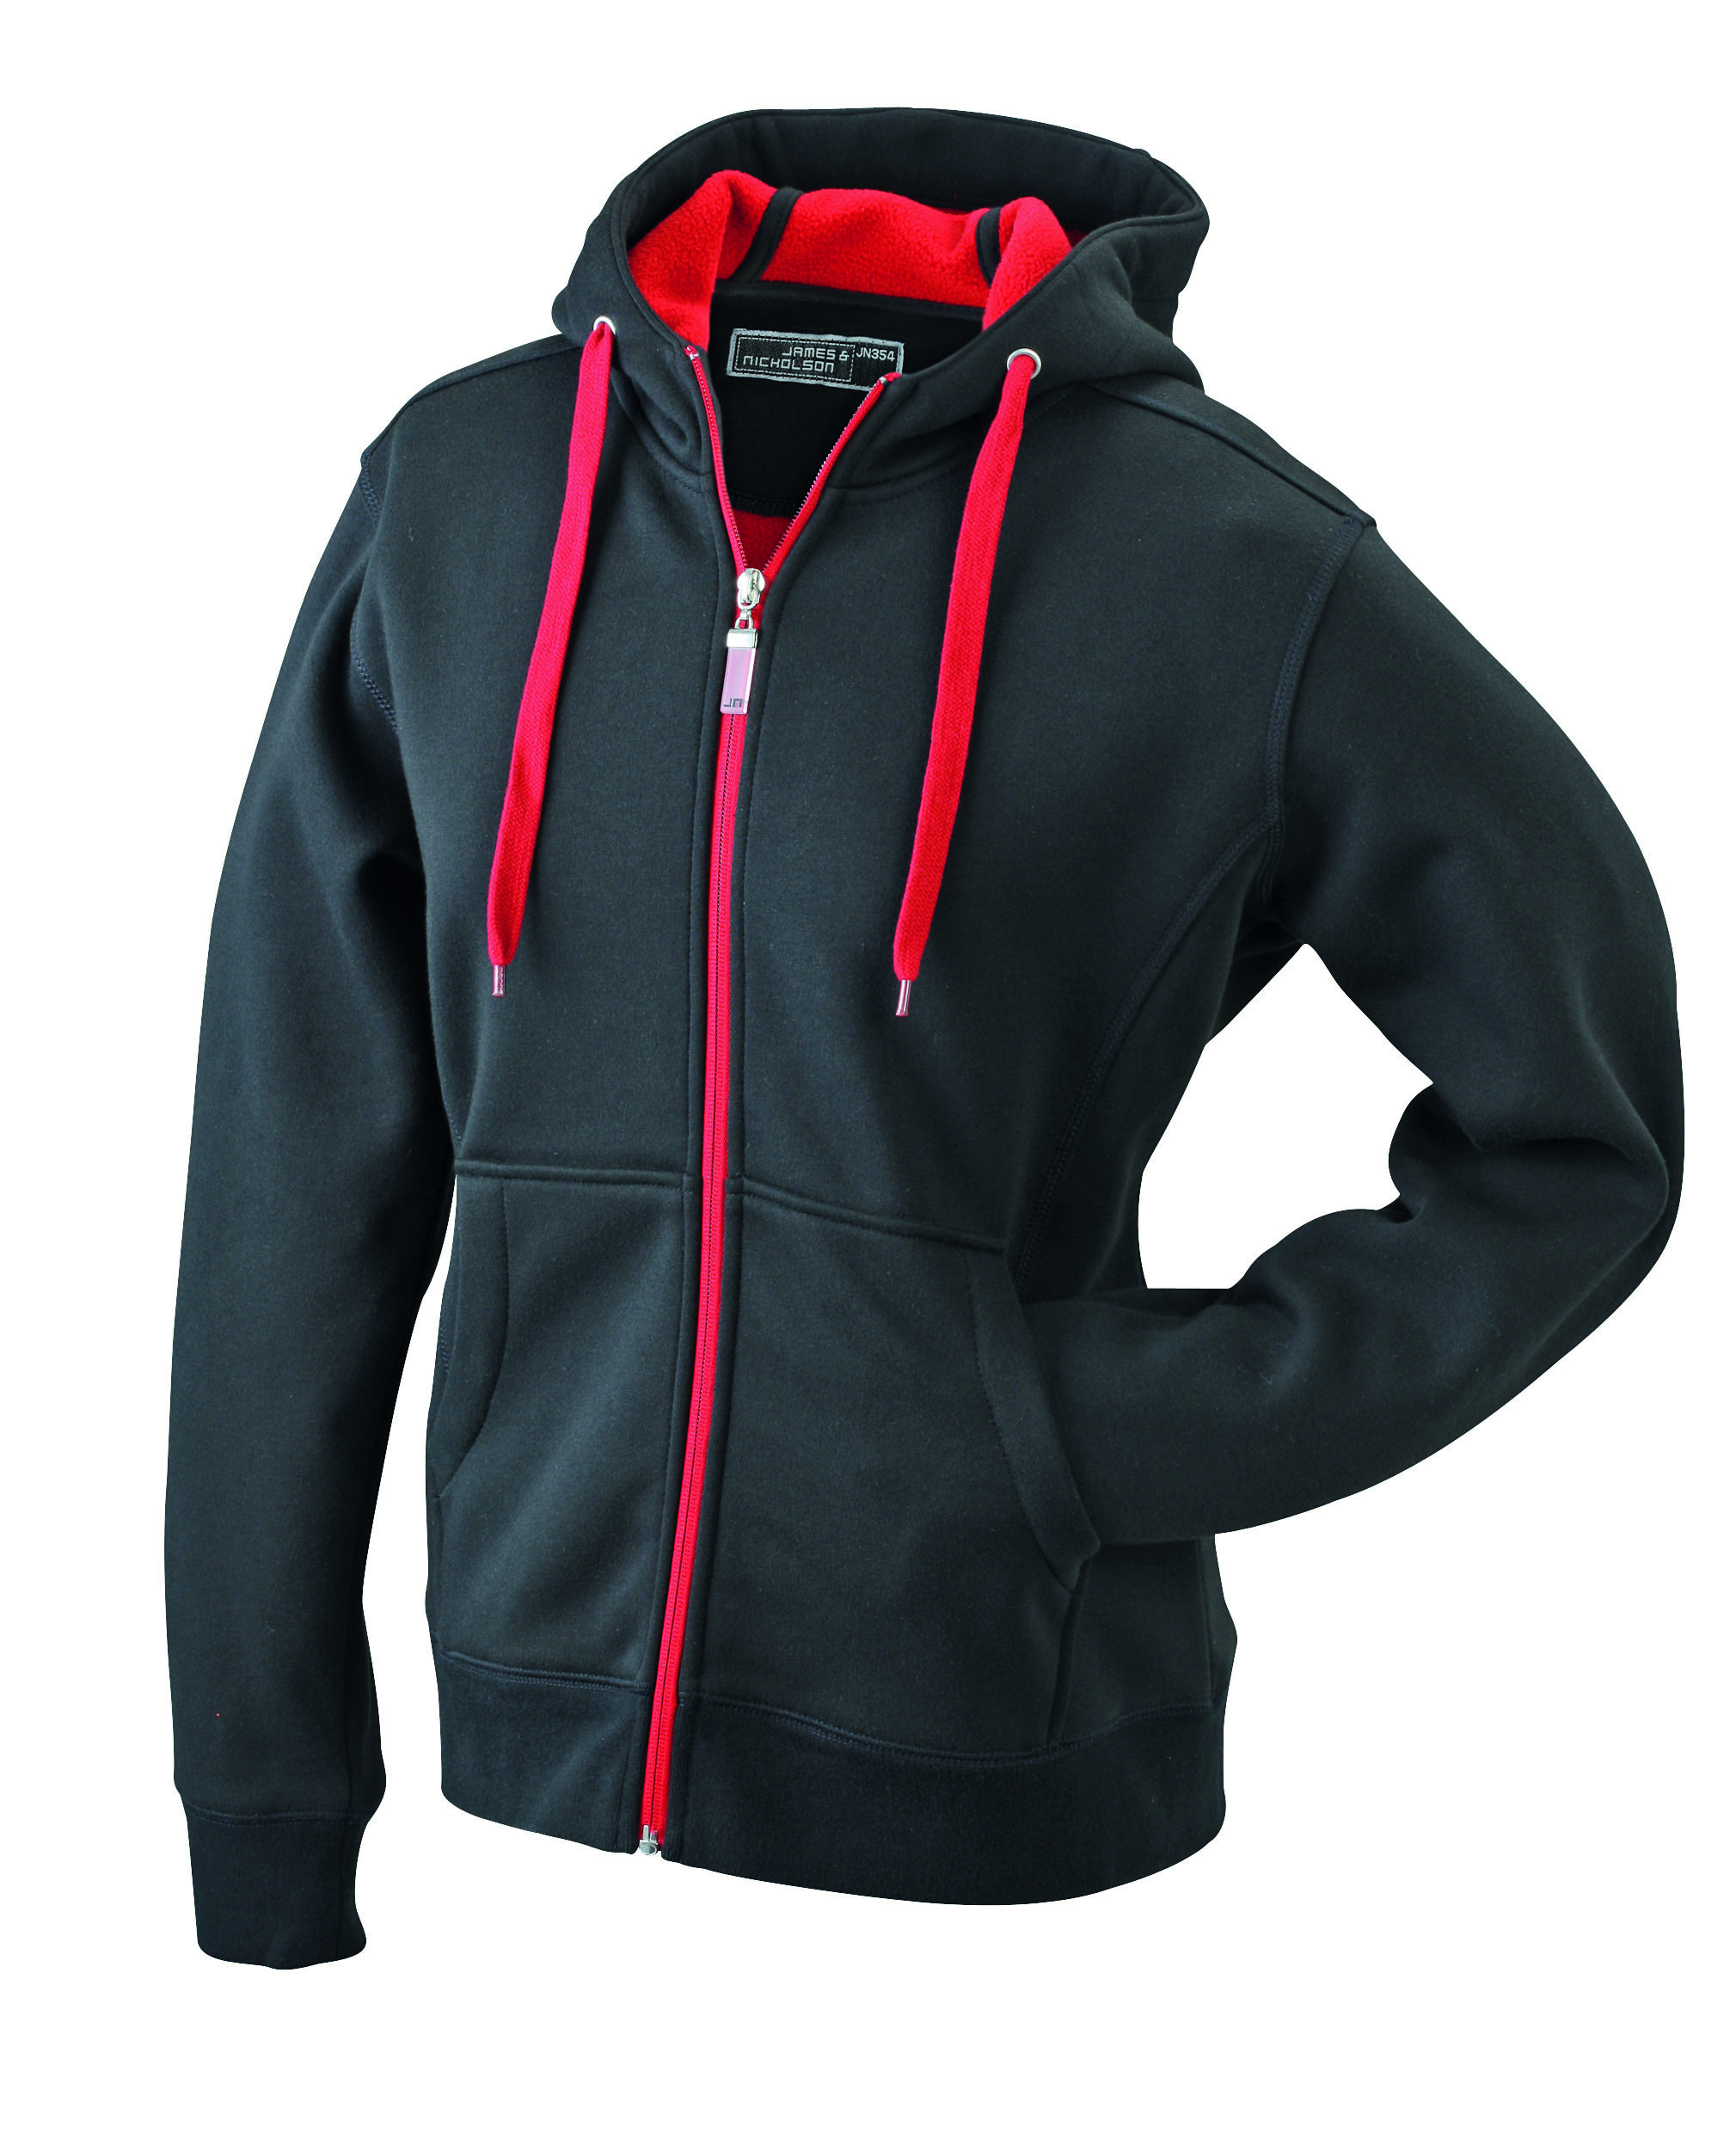 fleece outdoor stickerei frankfurt die online stickerei